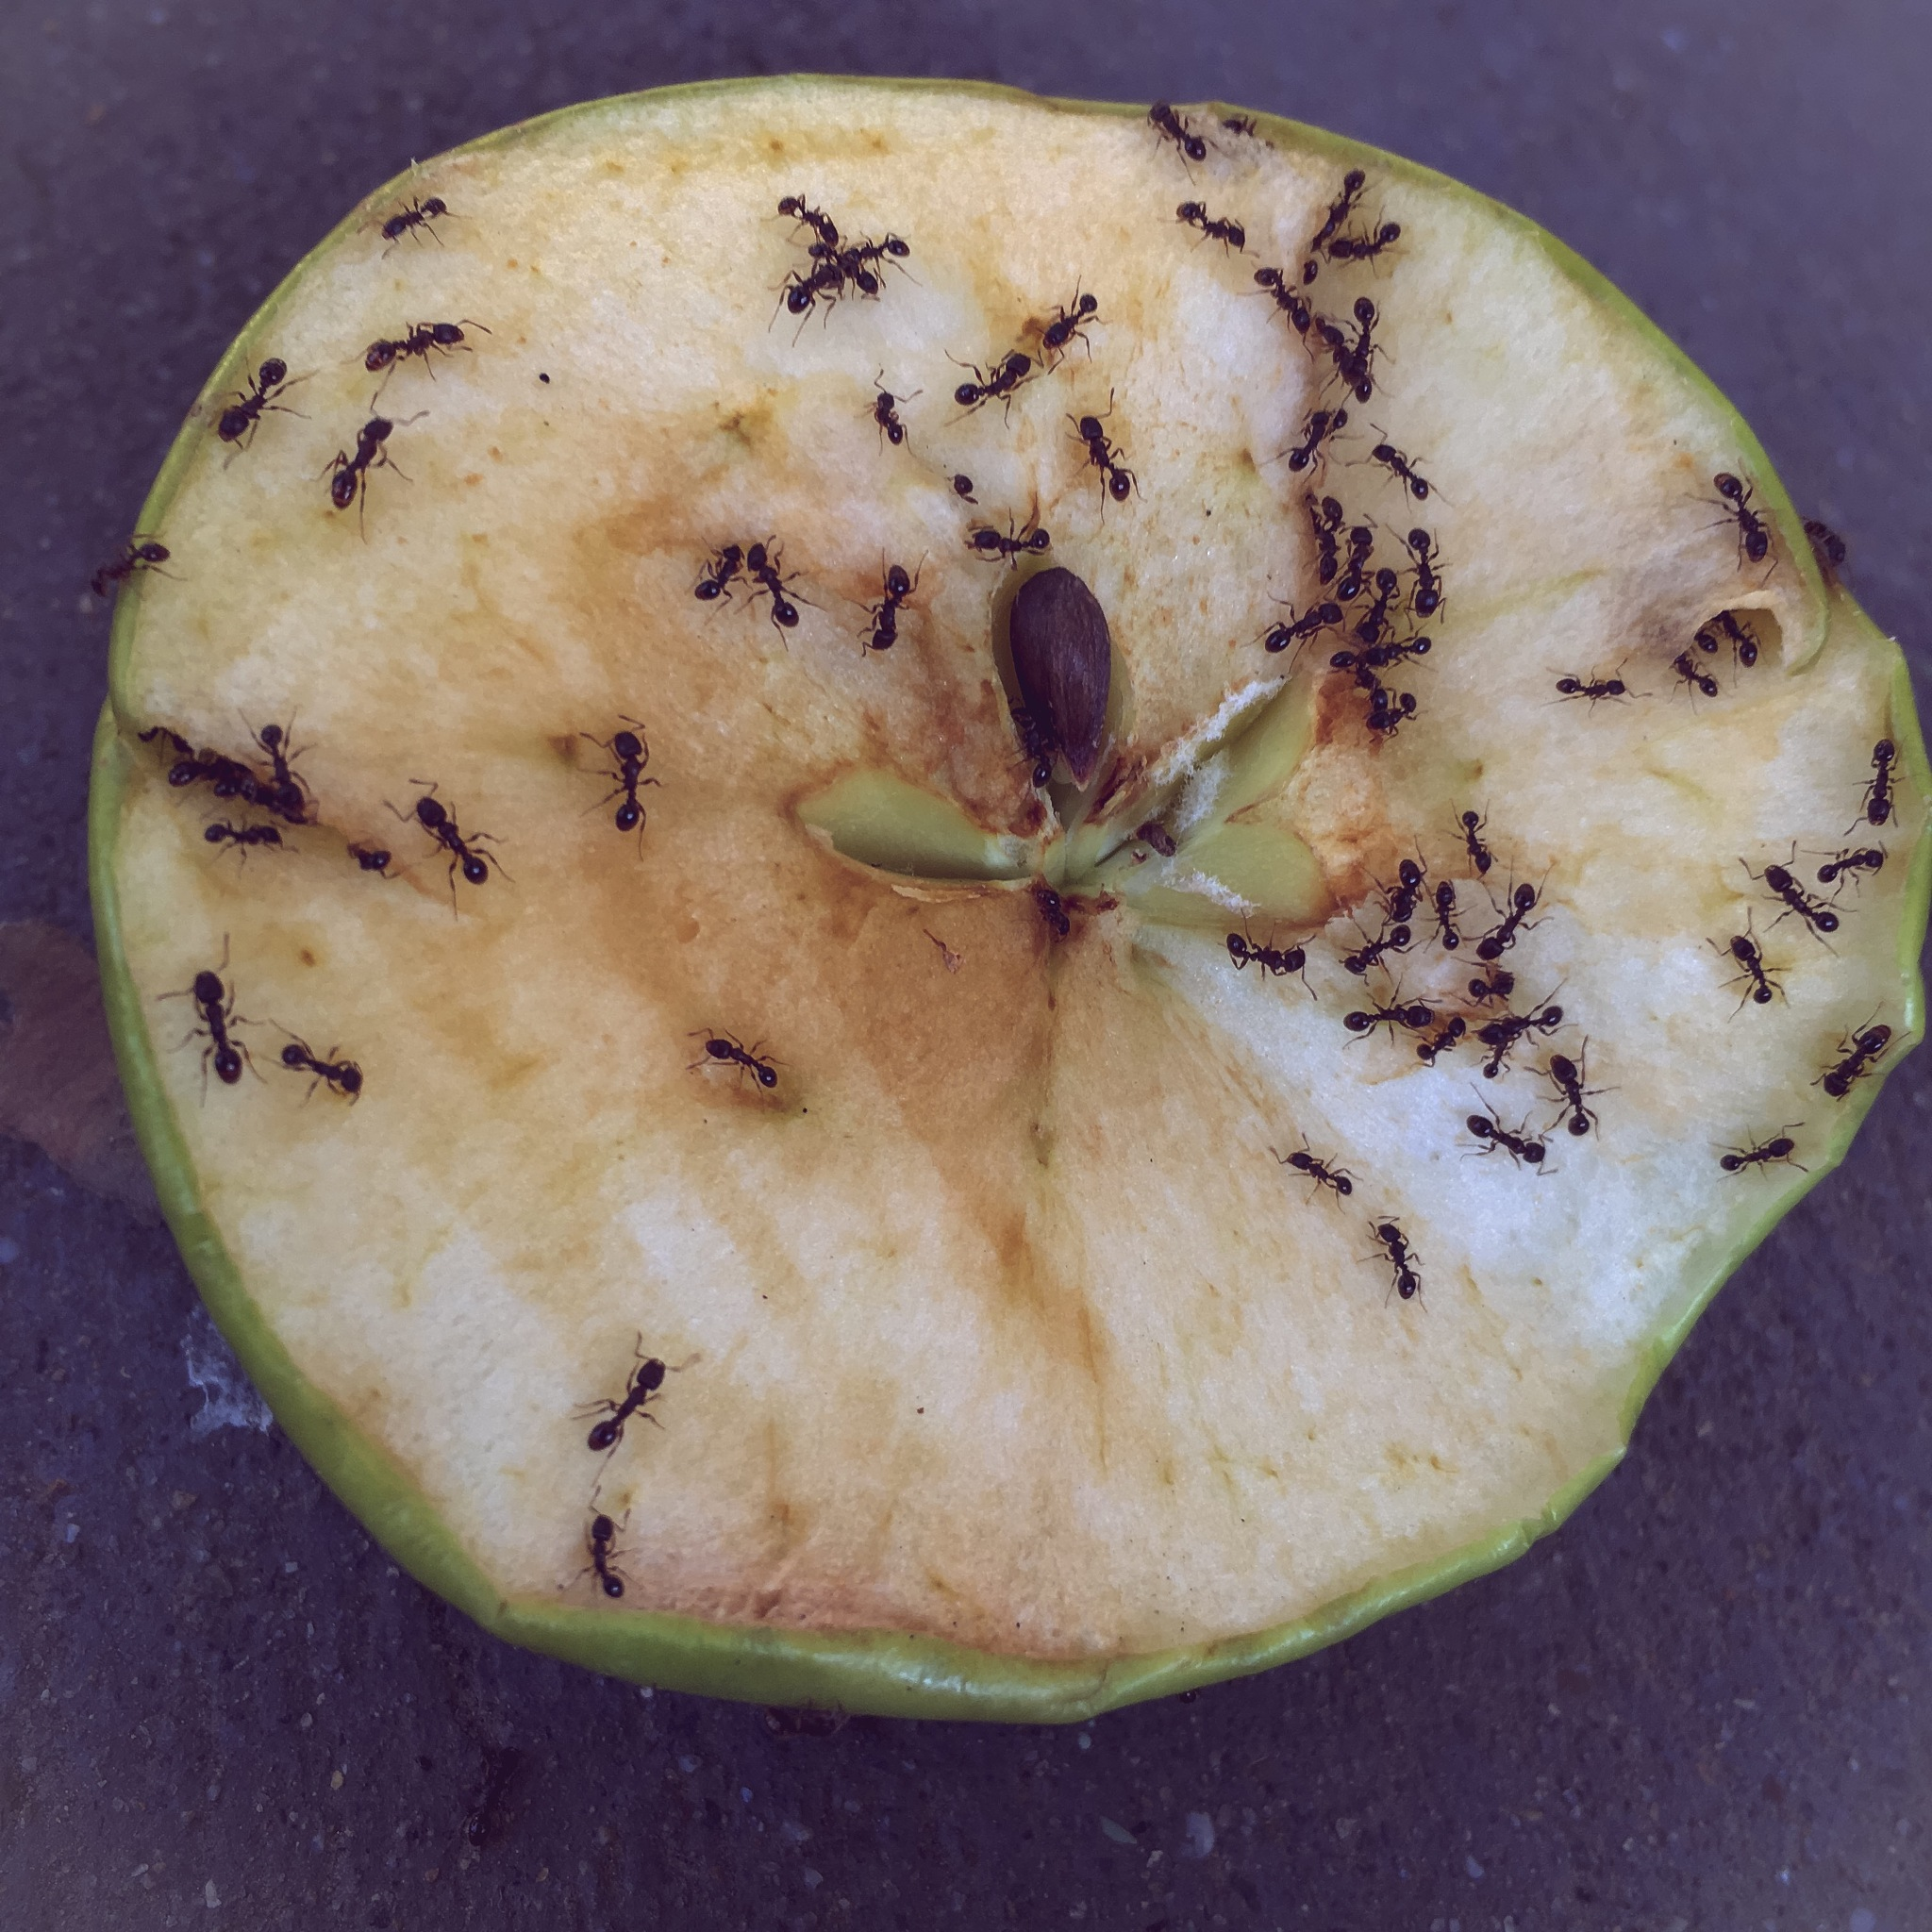 Apple and ants, this morning by Julie Johnson